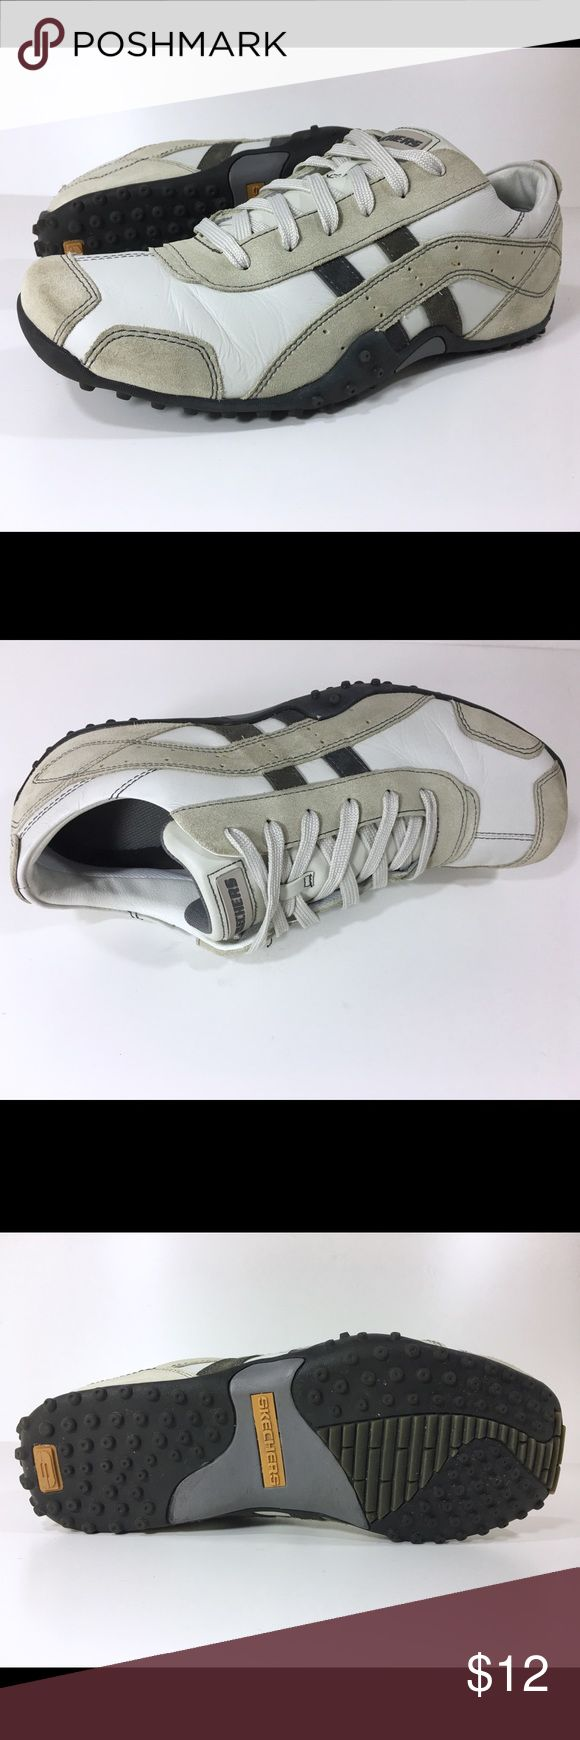 Skechers Men's Urban Track Resource Shoe Off White Skechers Men's Urban Track Resource Leather Shoes   Our Price: $12 Regular Price: $59 - save $47 (79%) _________________________________________  Size: 12 (D, M)  Color: Off White _________________________________________  Condition:  Pre-owned with some wear and no defects. See photos. _________________________________________  Features & details  • Leather  • Import  • Rubber outer sole  • Lace up   Product information  Men's  Skechers…